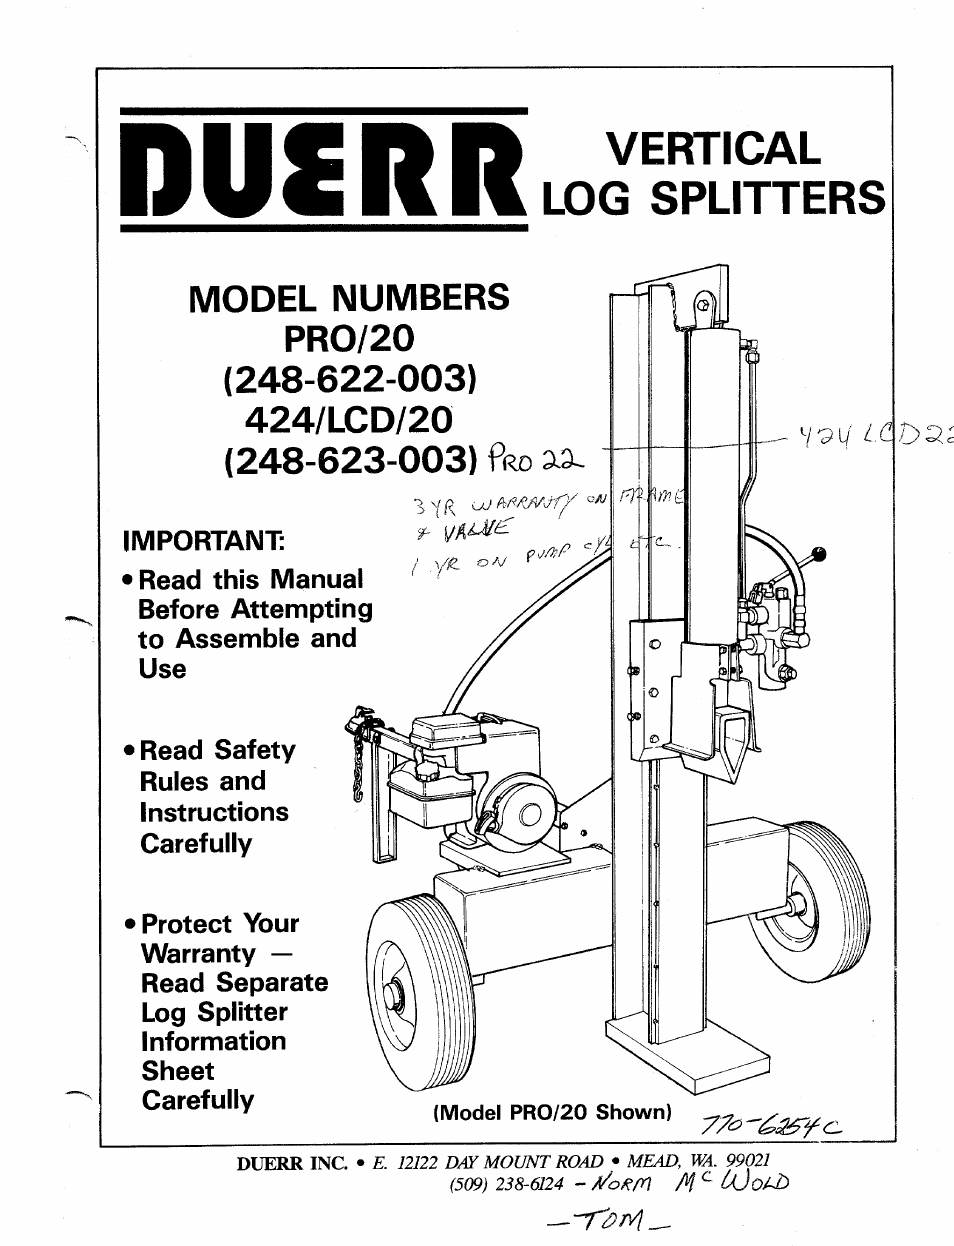 MTD Duerr 248-623-003 User Manual | 16 pages | Also for: Duerr 248-622-003